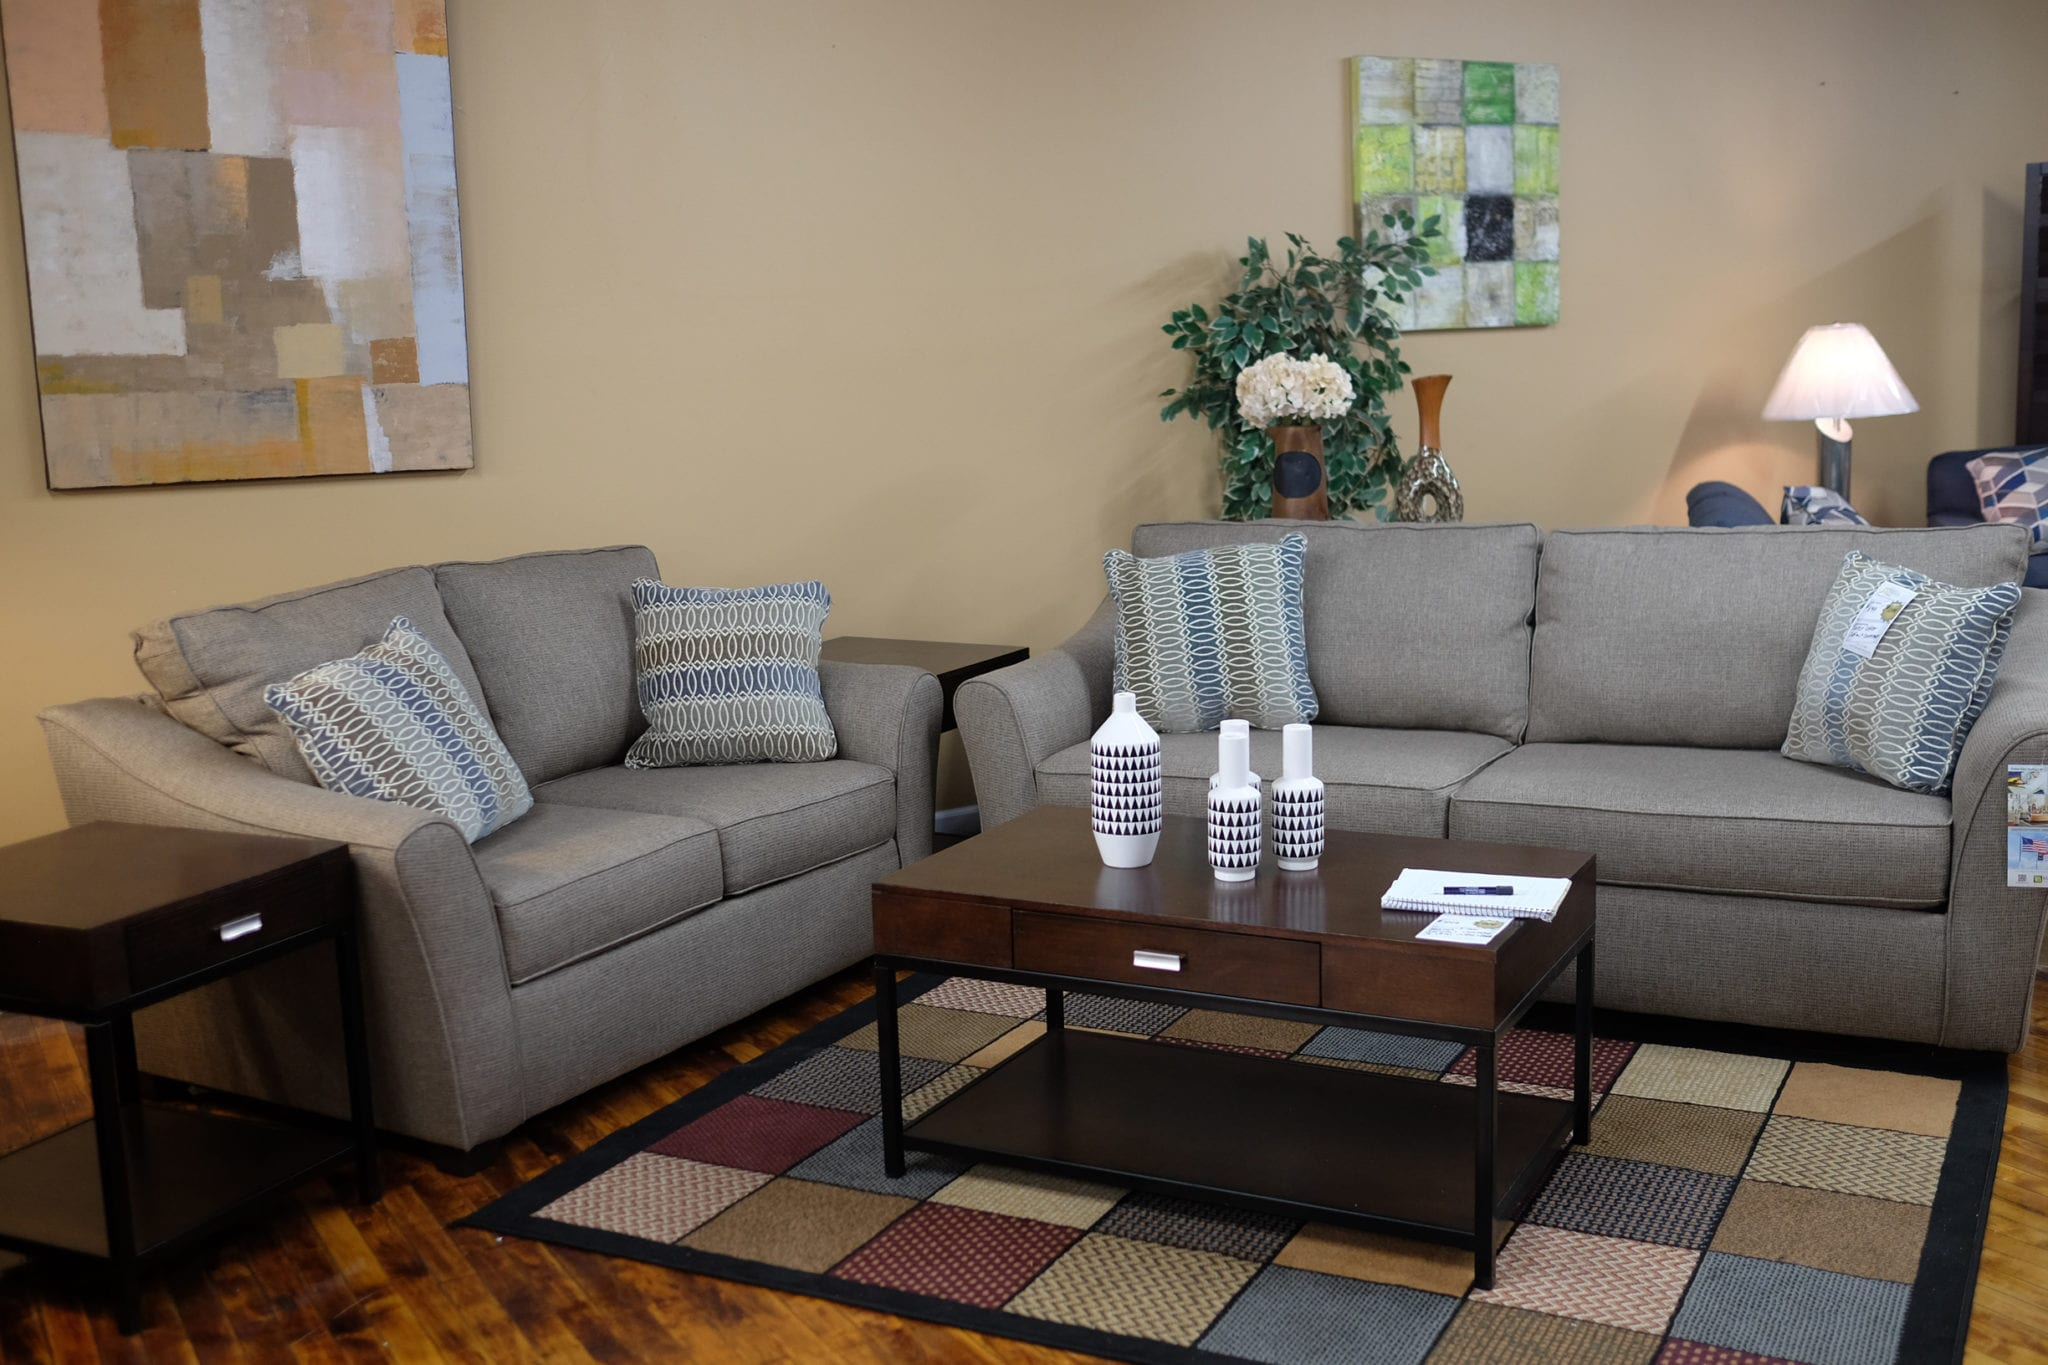 Yes, You Can Rent Furniture!